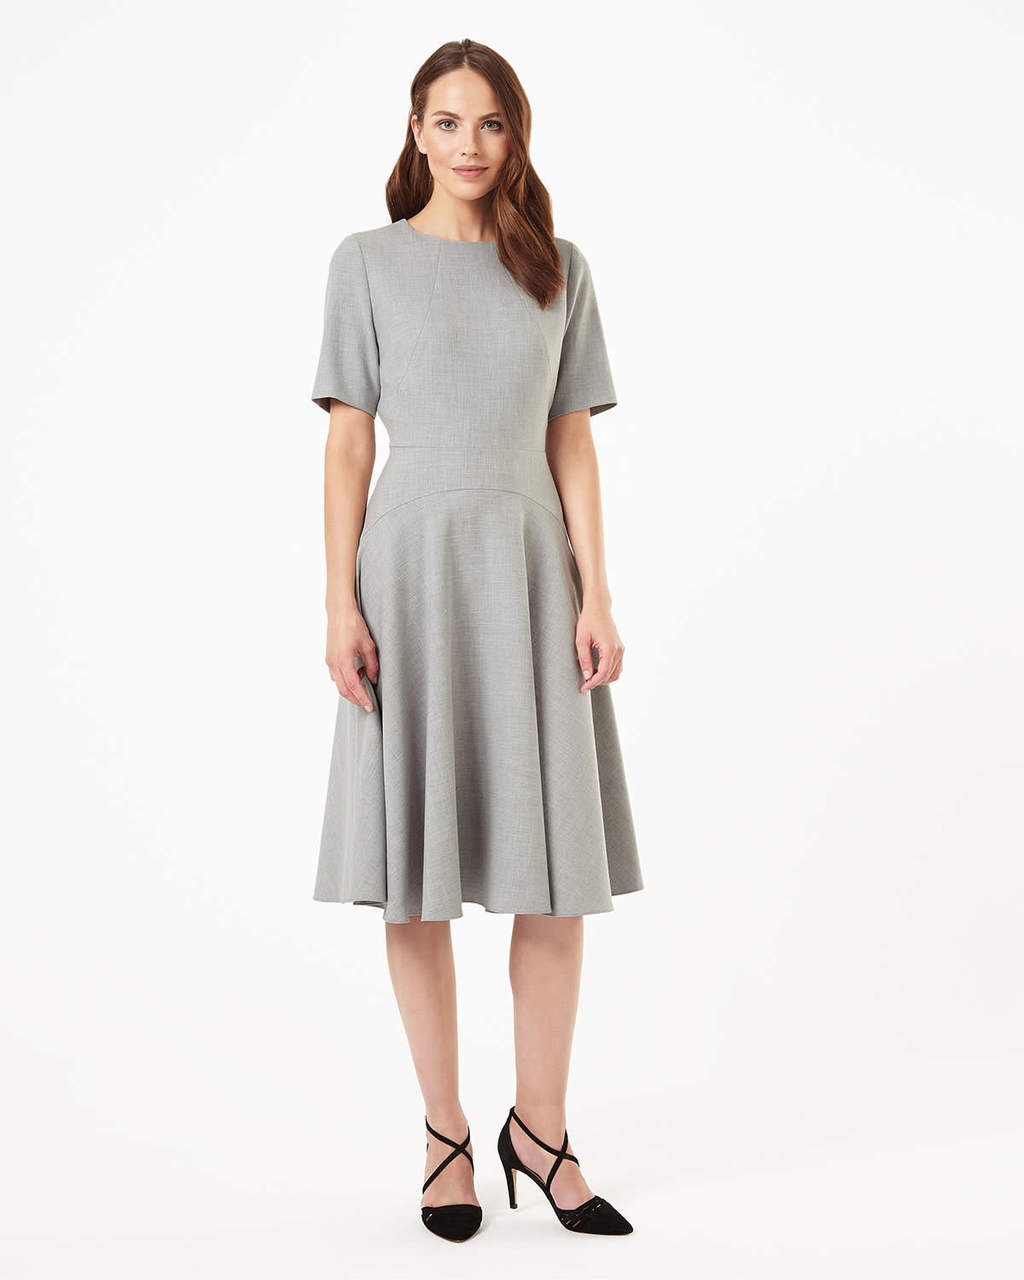 Leoni Midi Fit And Flare Dress - length: below the knee; pattern: plain; predominant colour: light grey; occasions: casual; fit: fitted at waist & bust; style: fit & flare; fibres: polyester/polyamide - stretch; neckline: crew; sleeve length: short sleeve; sleeve style: standard; pattern type: fabric; texture group: jersey - stretchy/drapey; season: s/s 2016; wardrobe: basic